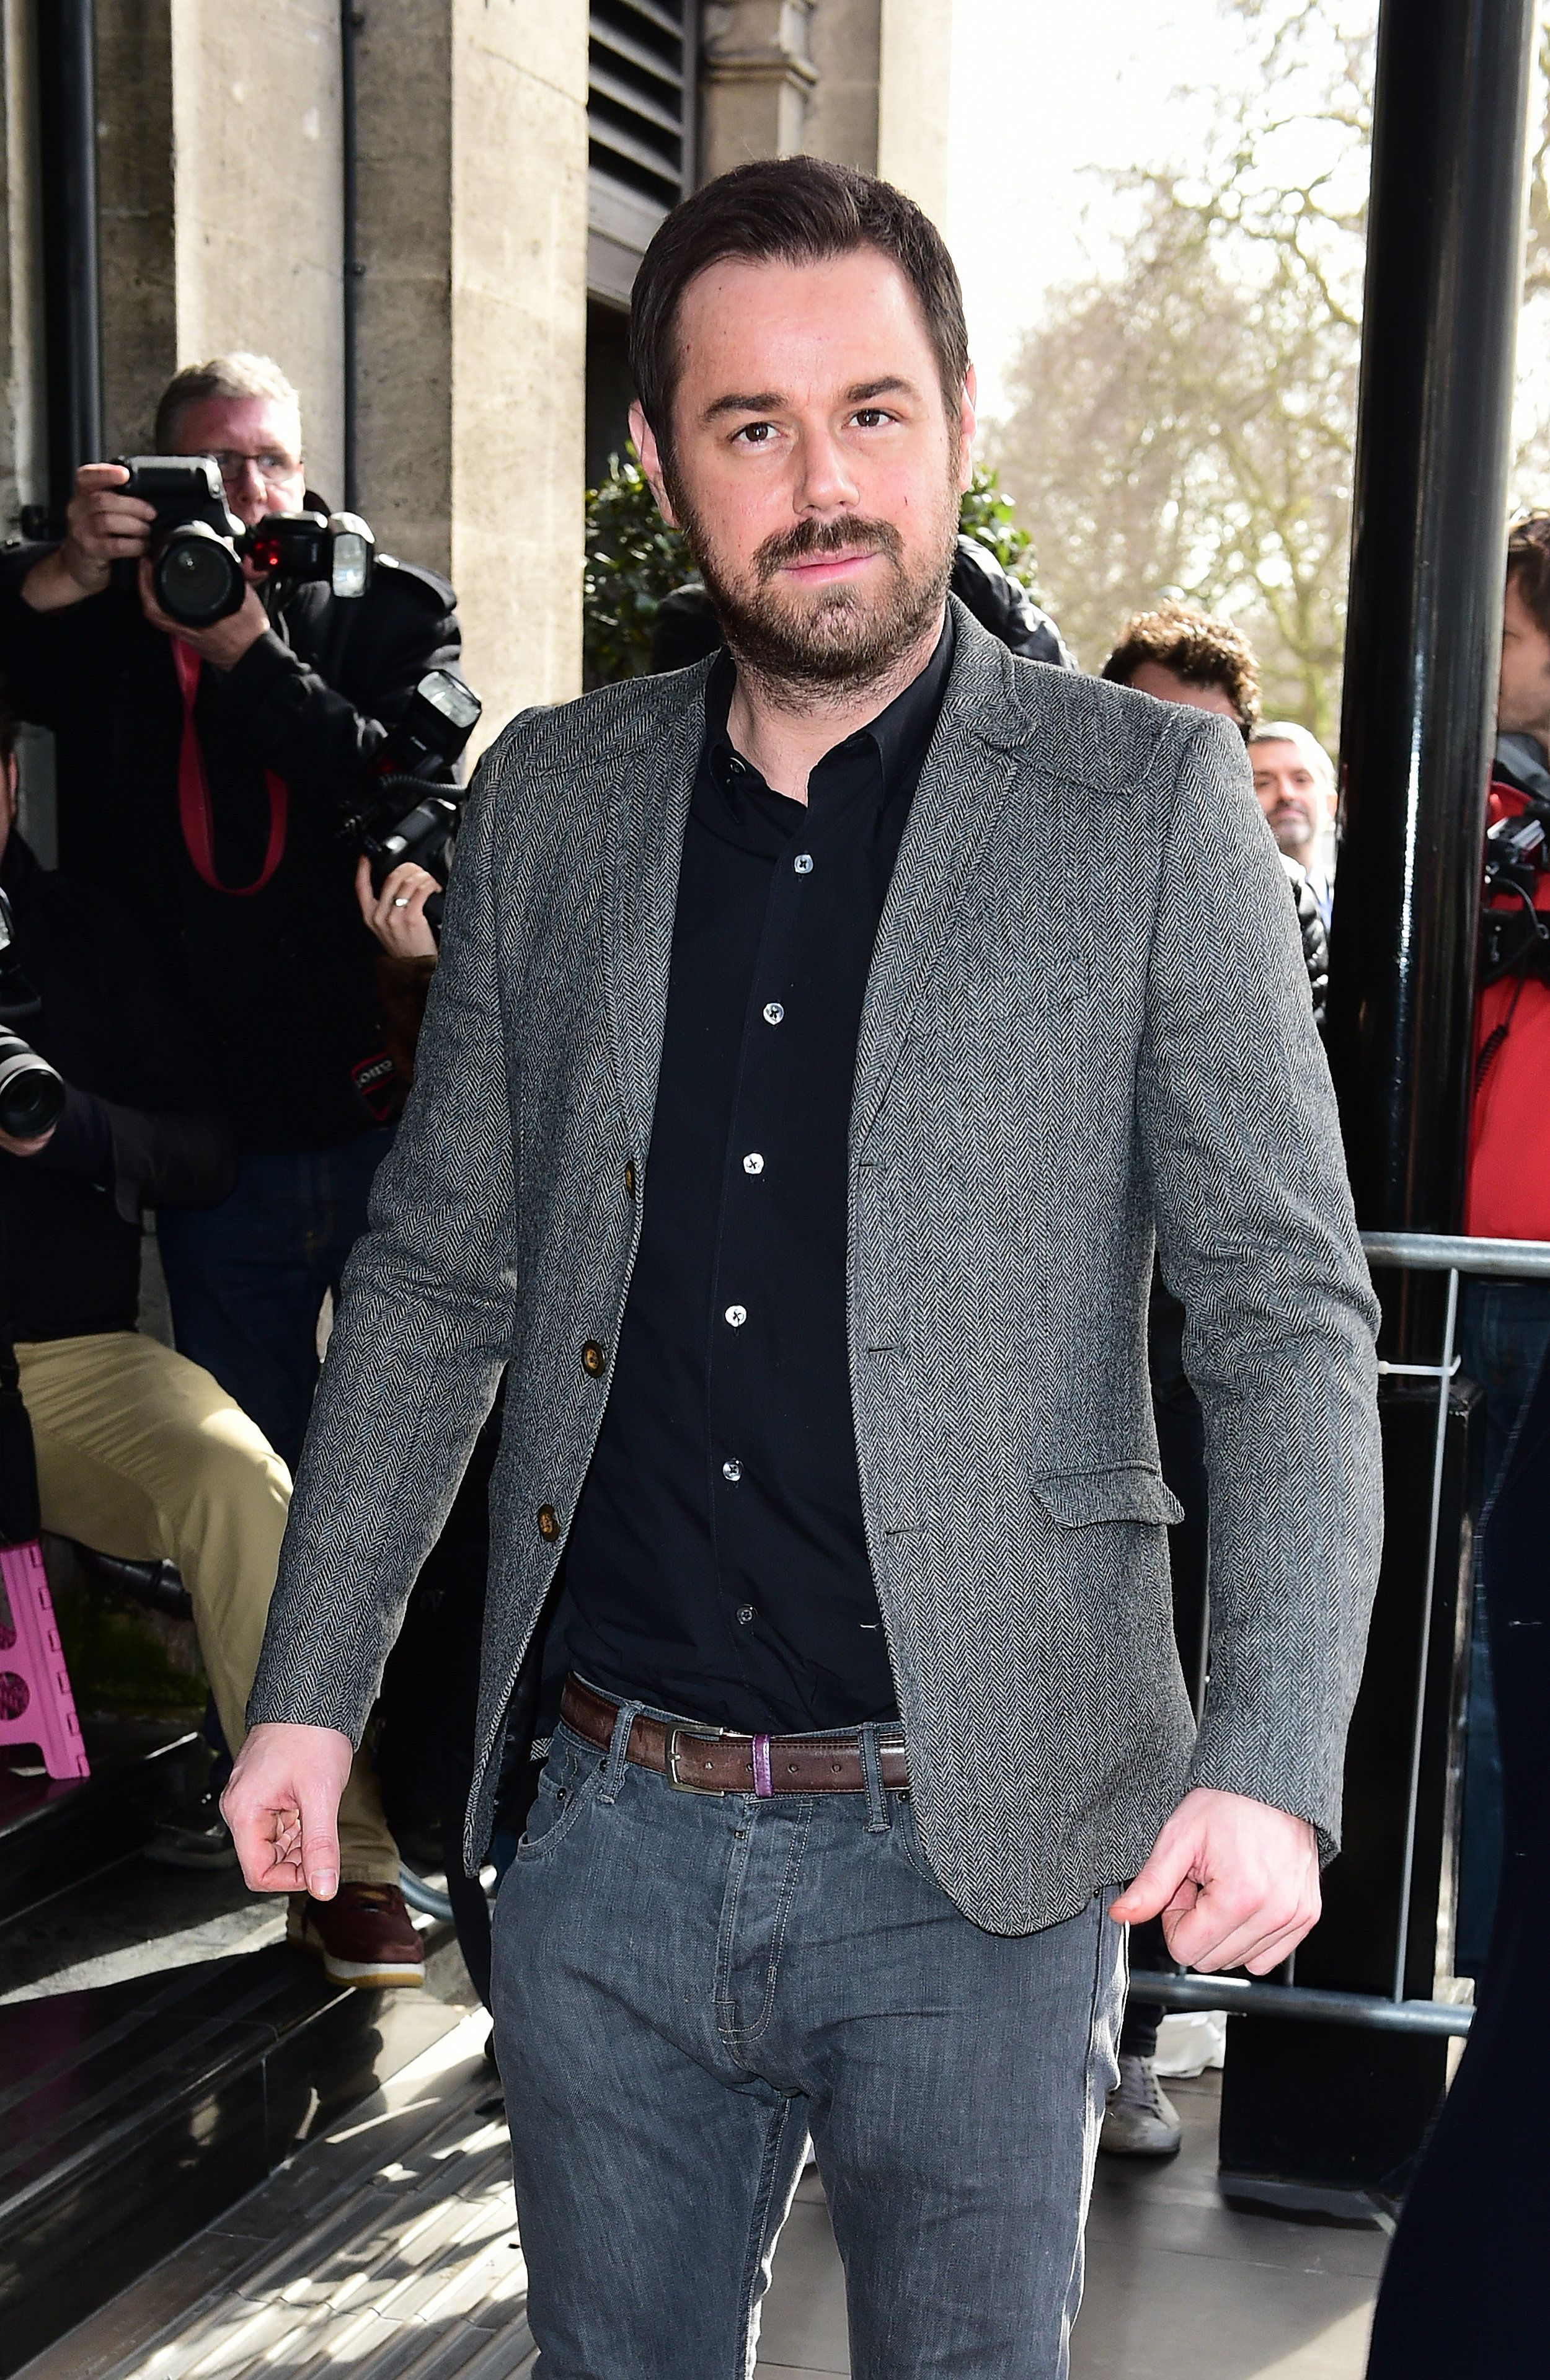 Danny Dyer Sticks Up For His Daughter, Amid Mark Wright